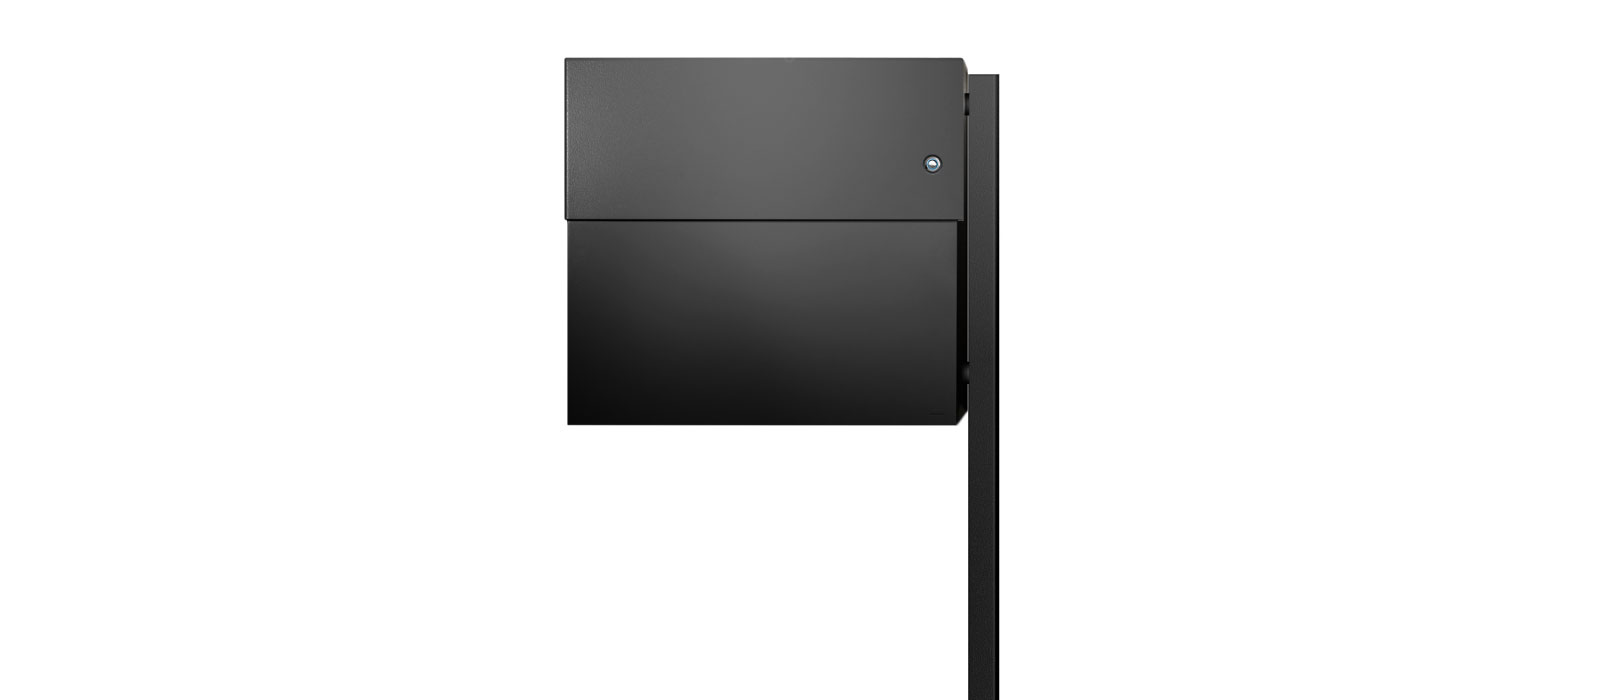 standbriefkasten mit klingel xxl 2 radius design. Black Bedroom Furniture Sets. Home Design Ideas